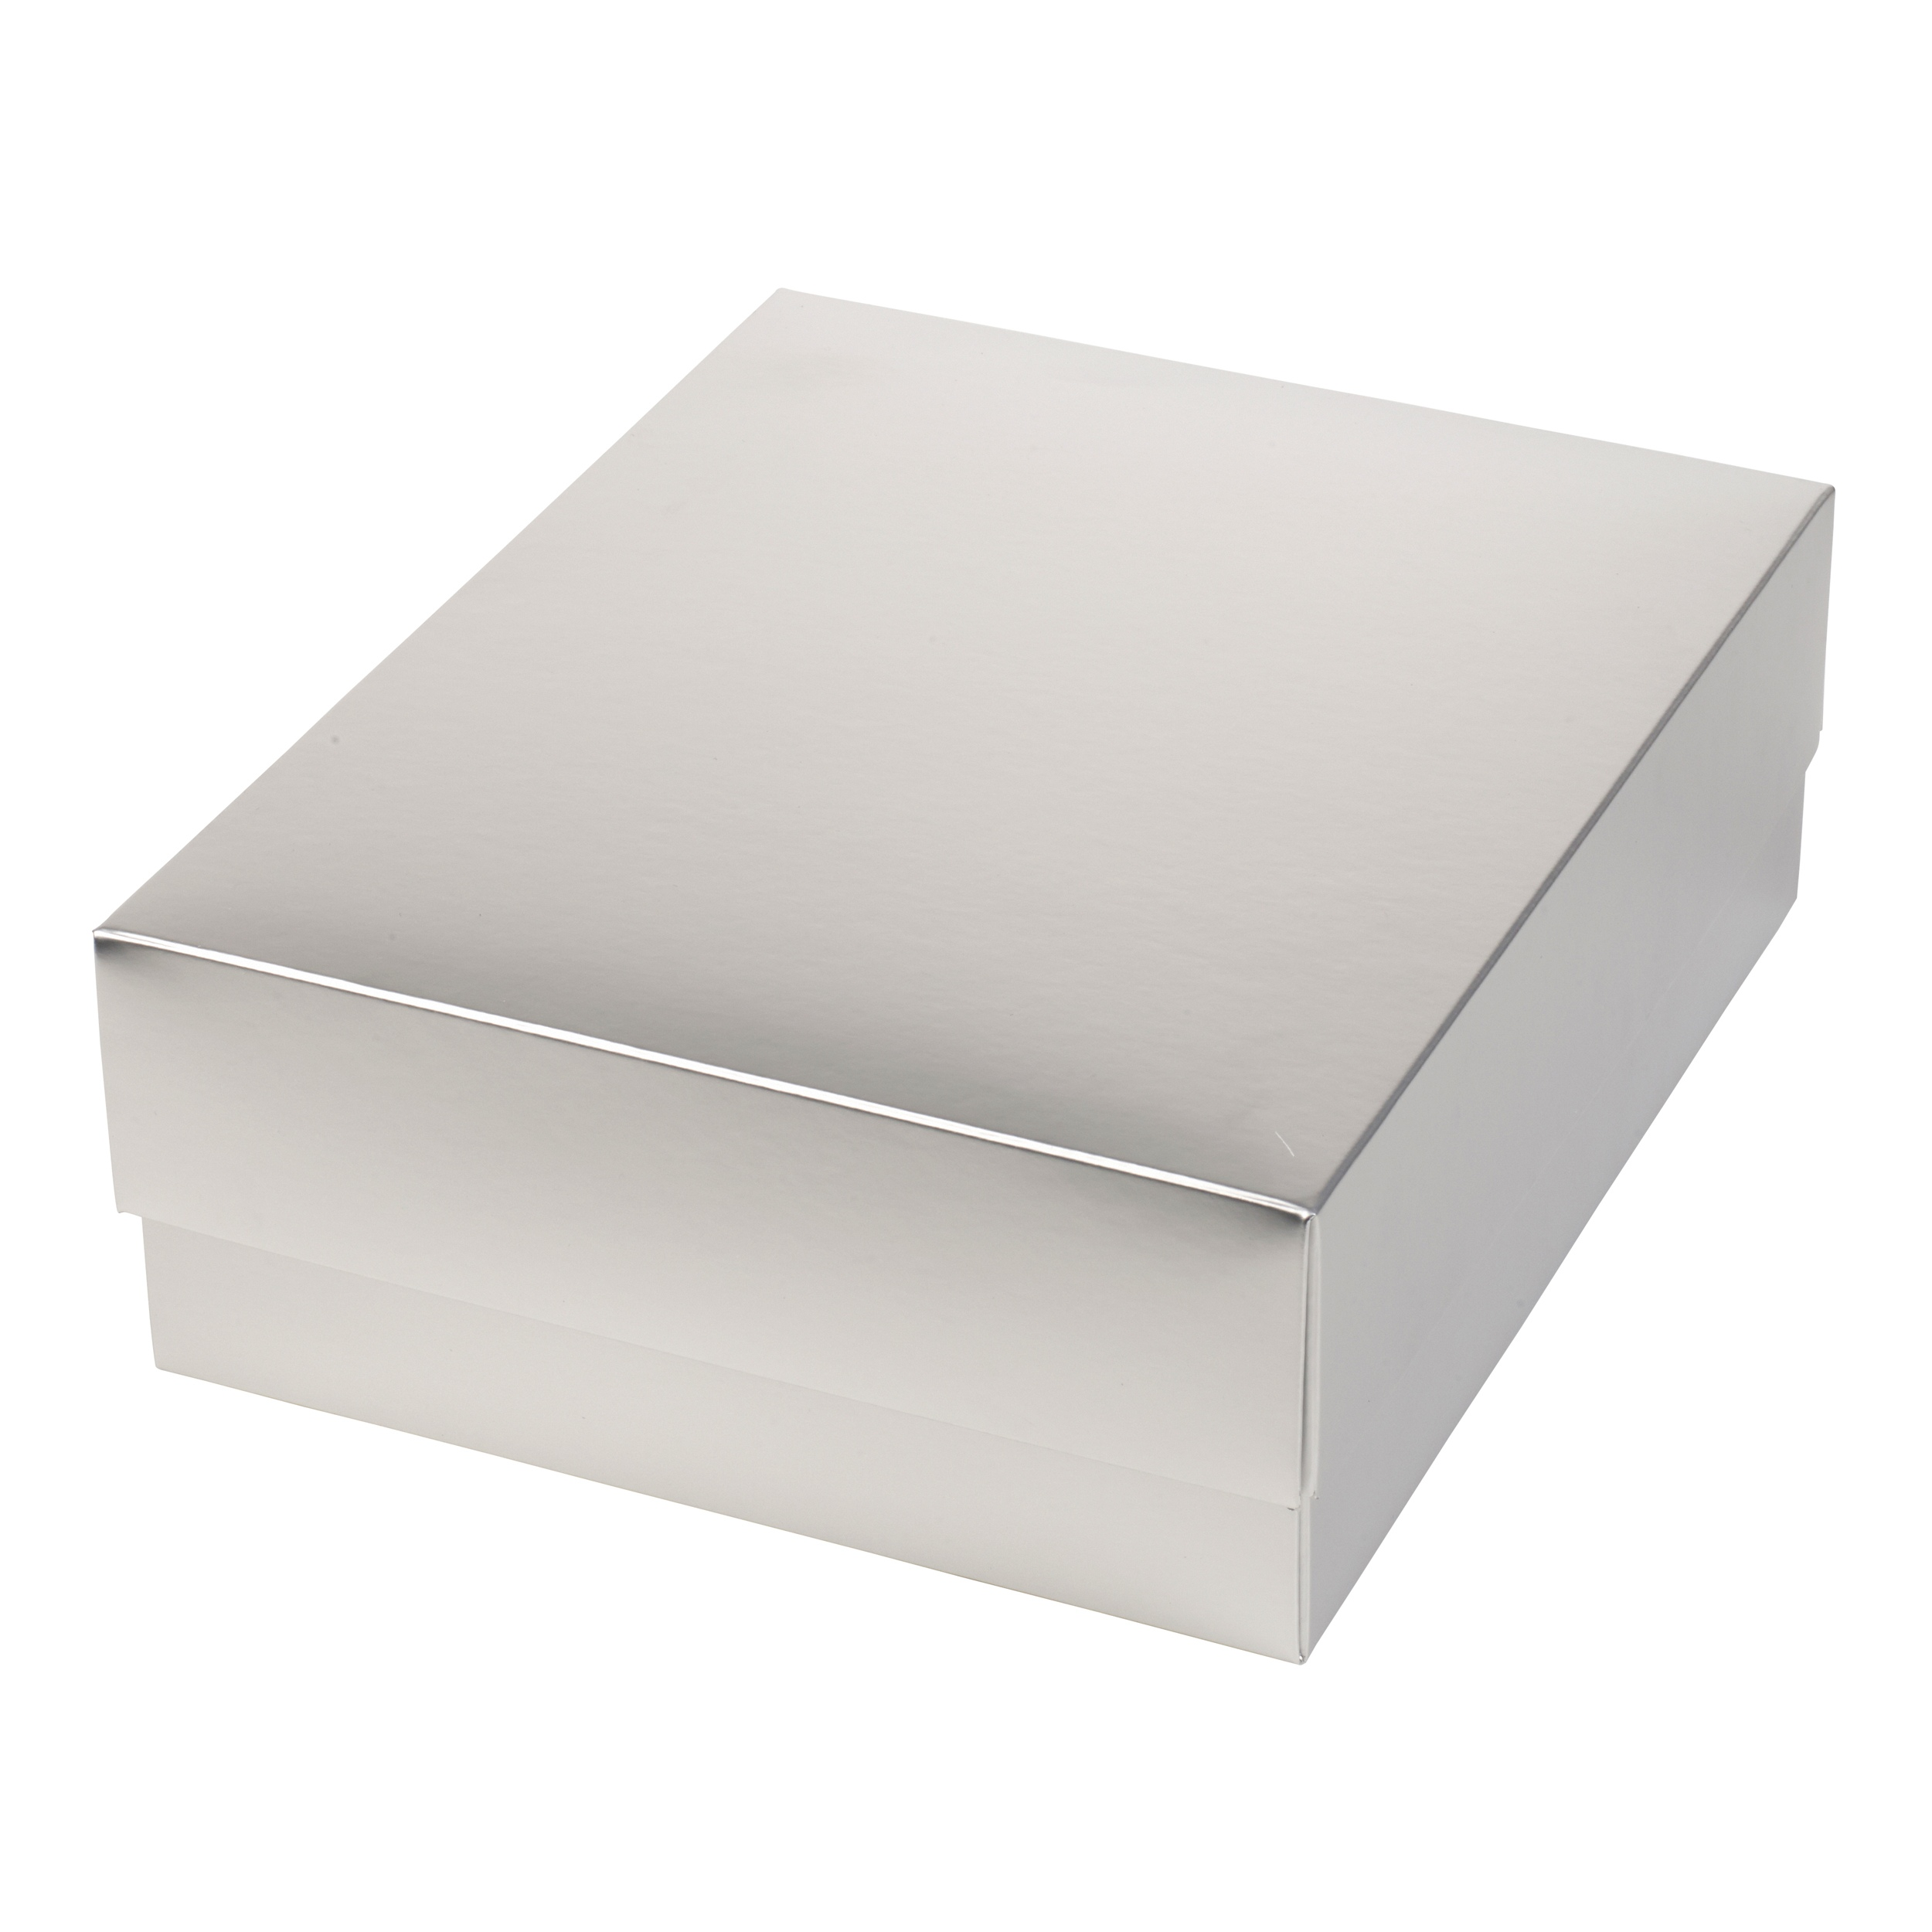 Details About Card Matte Silver Gift Boxes Occasion Presentation Greeting Box Dvd Wedding Set